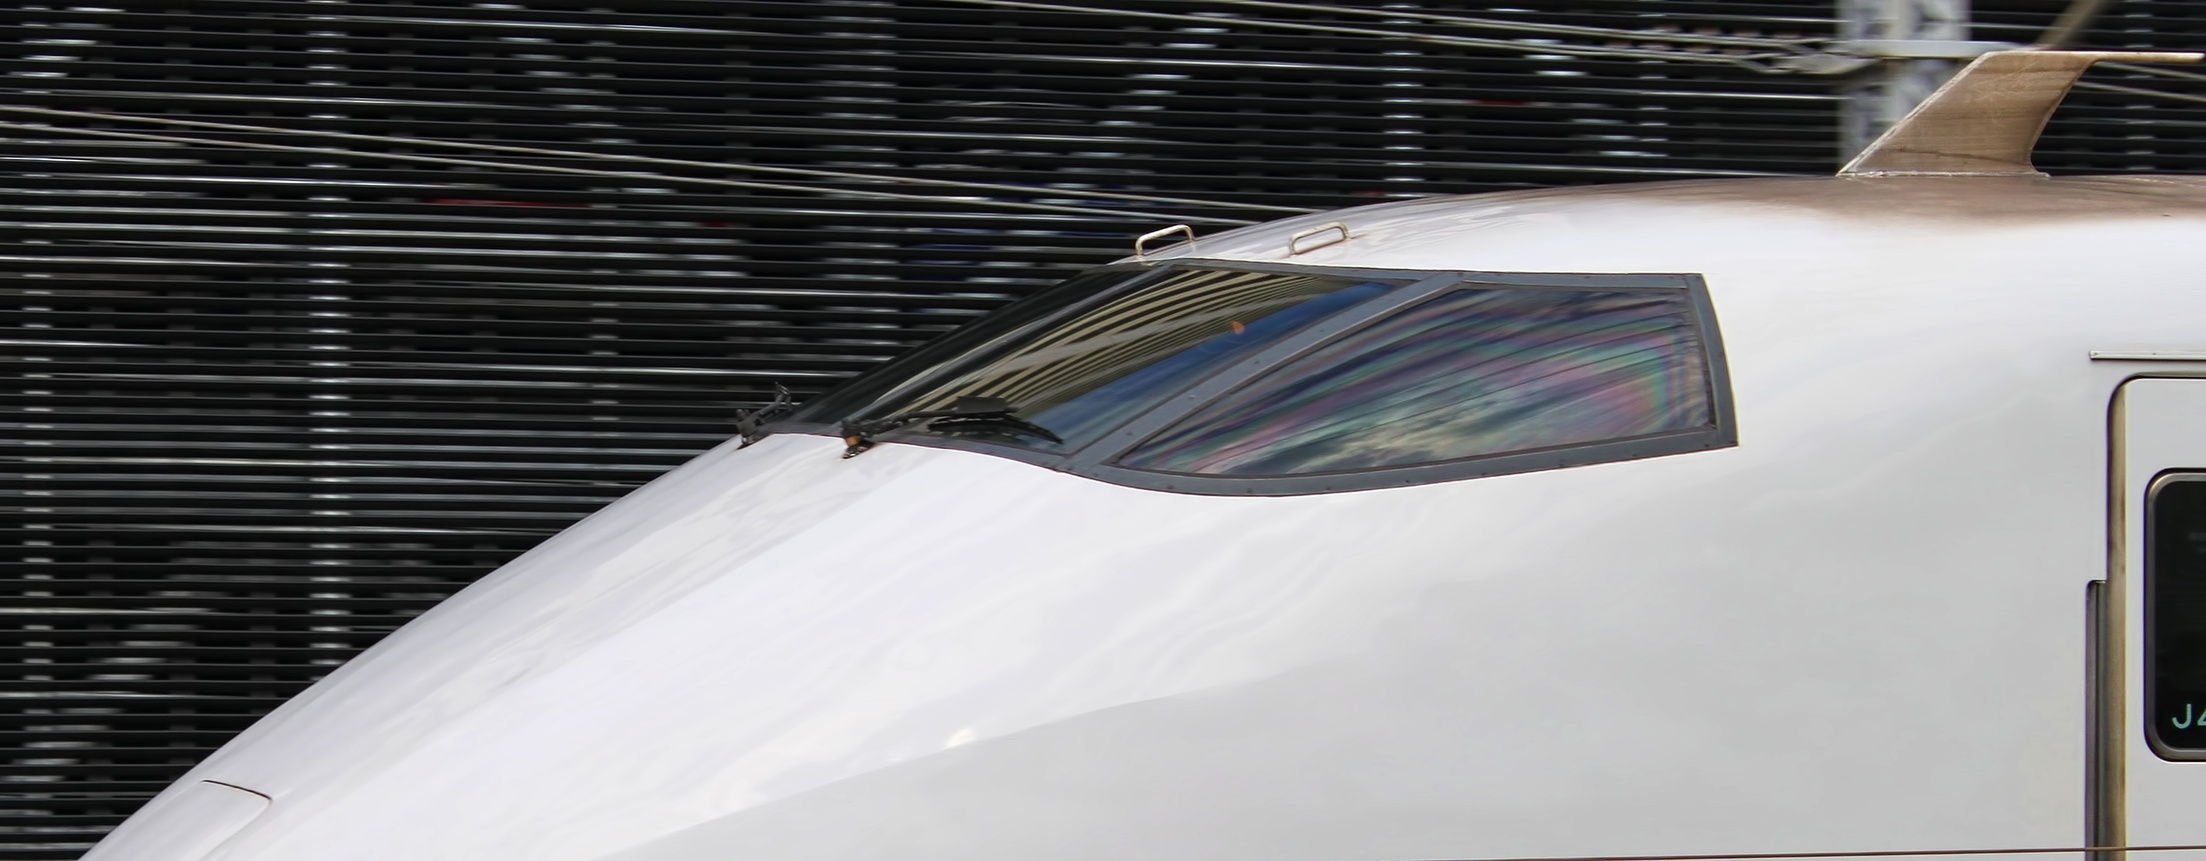 Head of the 500 Series Shinkansen